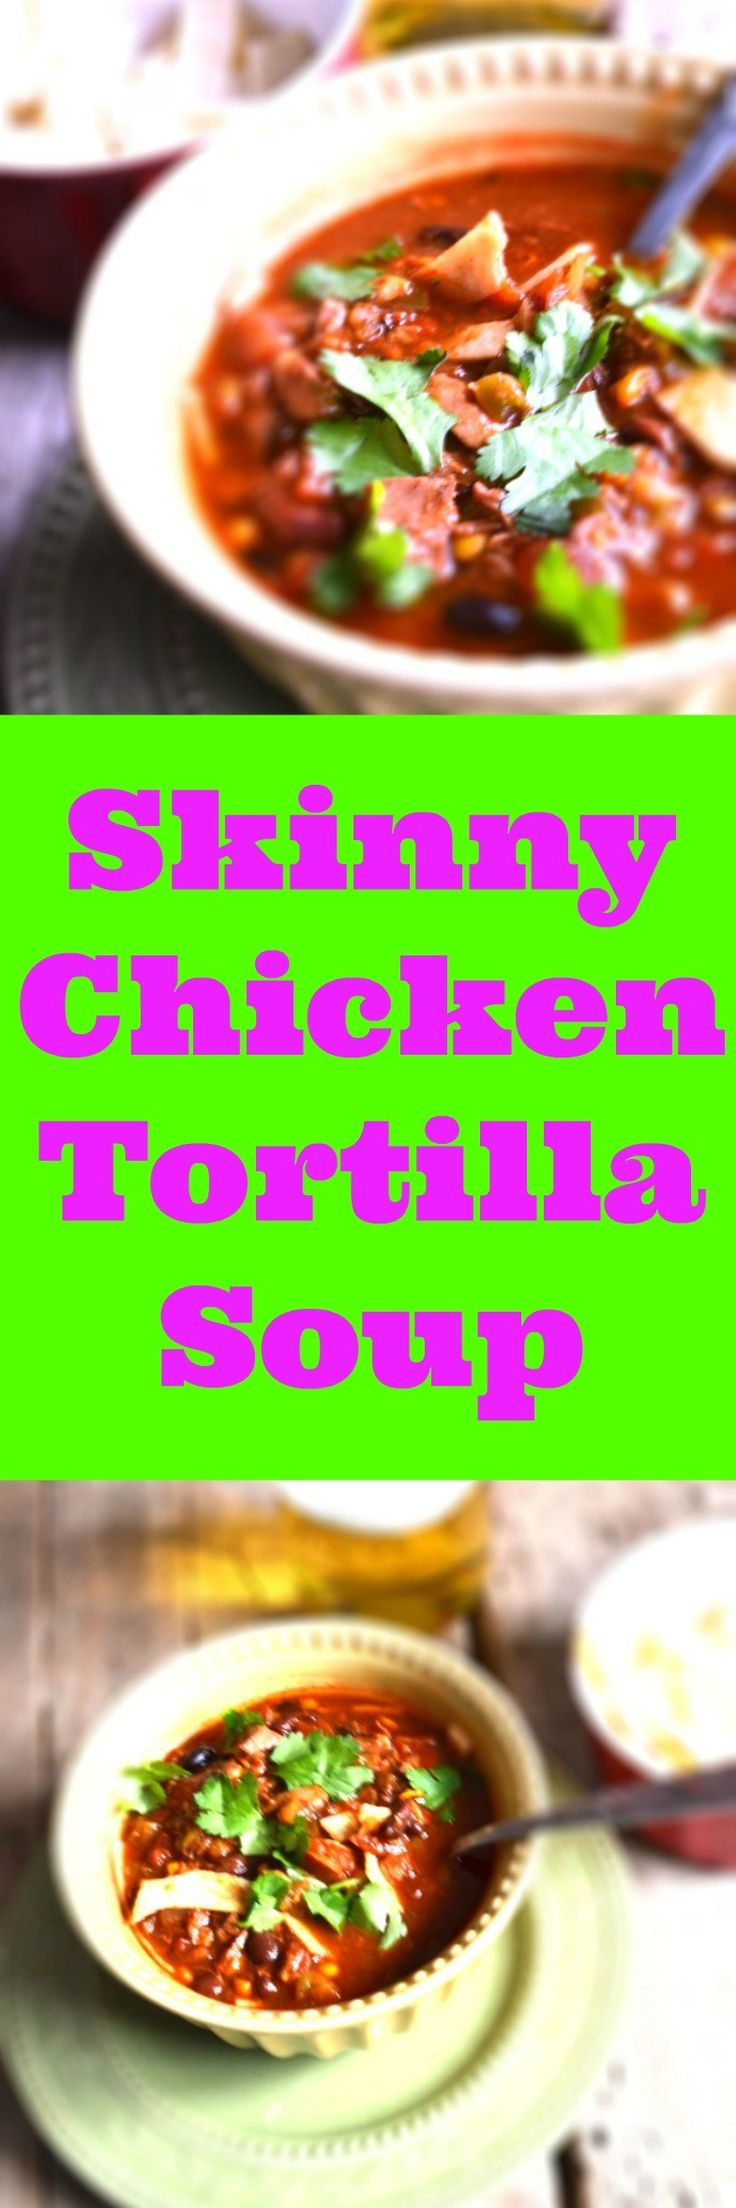 You'll want to try this Chicken Tortilla Soup Recipe when a cold or flu hits you. You absolutely should try this natural health remedy to cure your cough and cold. The reason why is because of the natural chicken broth.